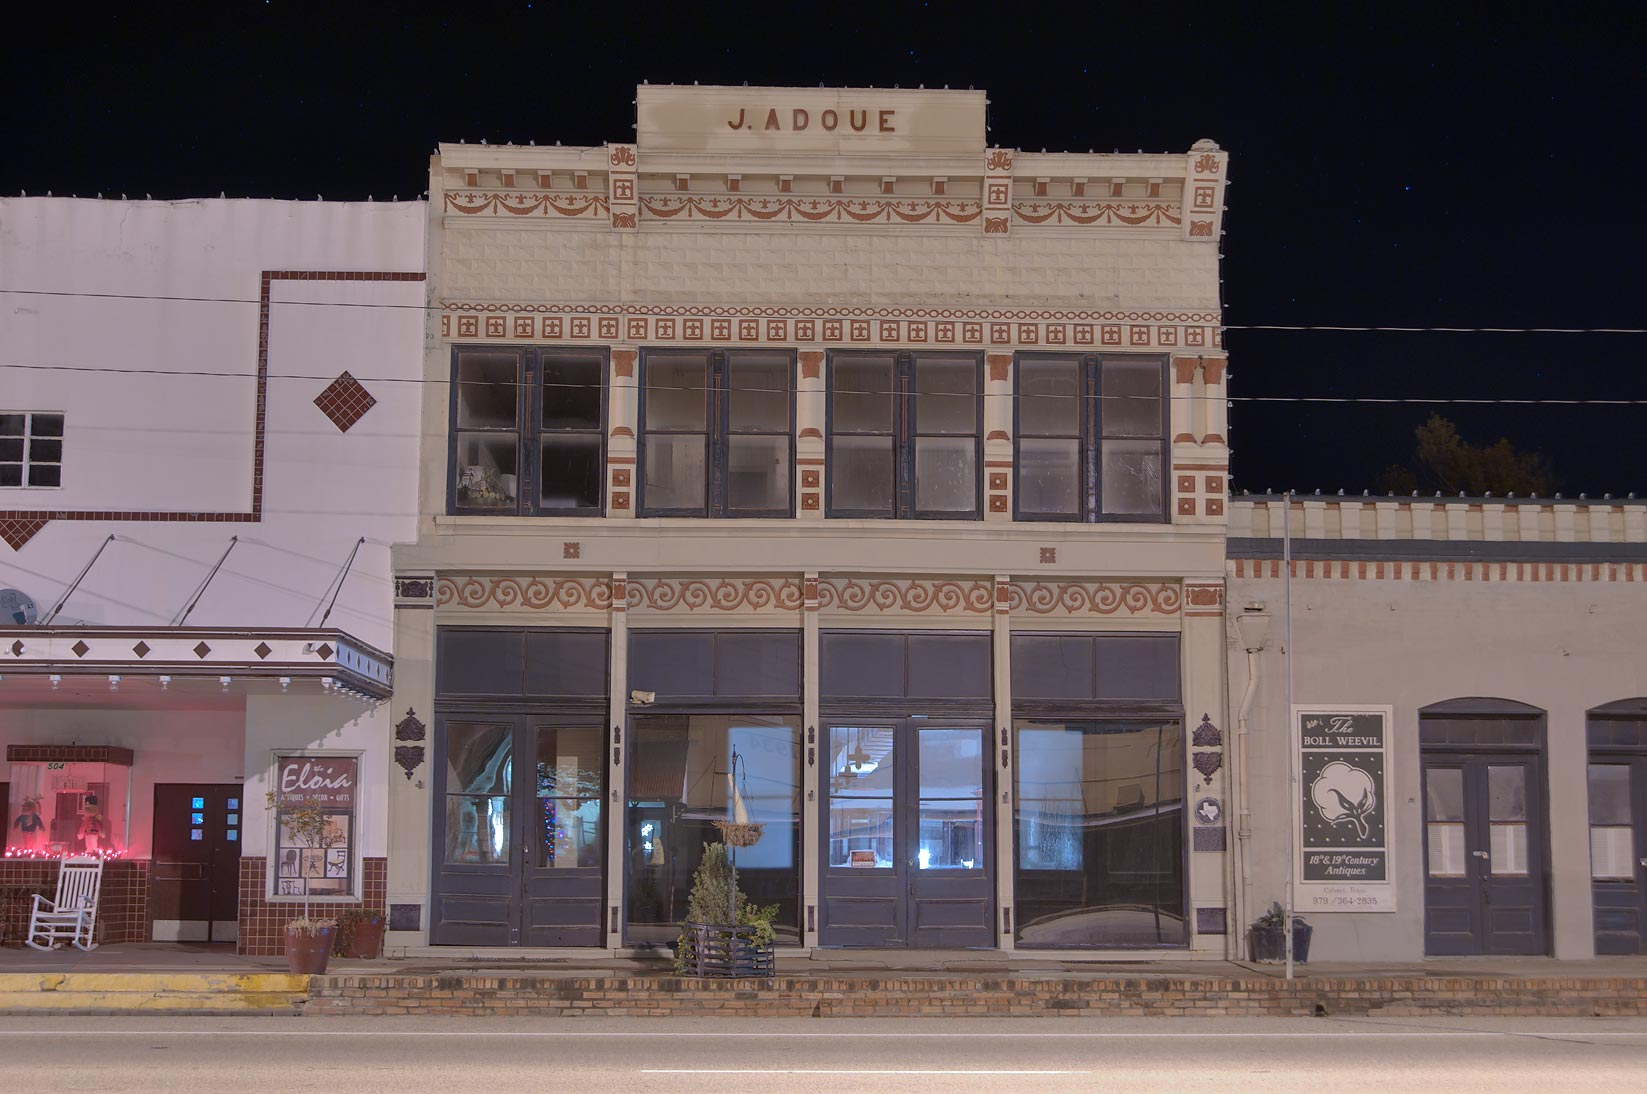 Jacques Adoue Building (1884) at 506 Main St.. Calvert, Texas